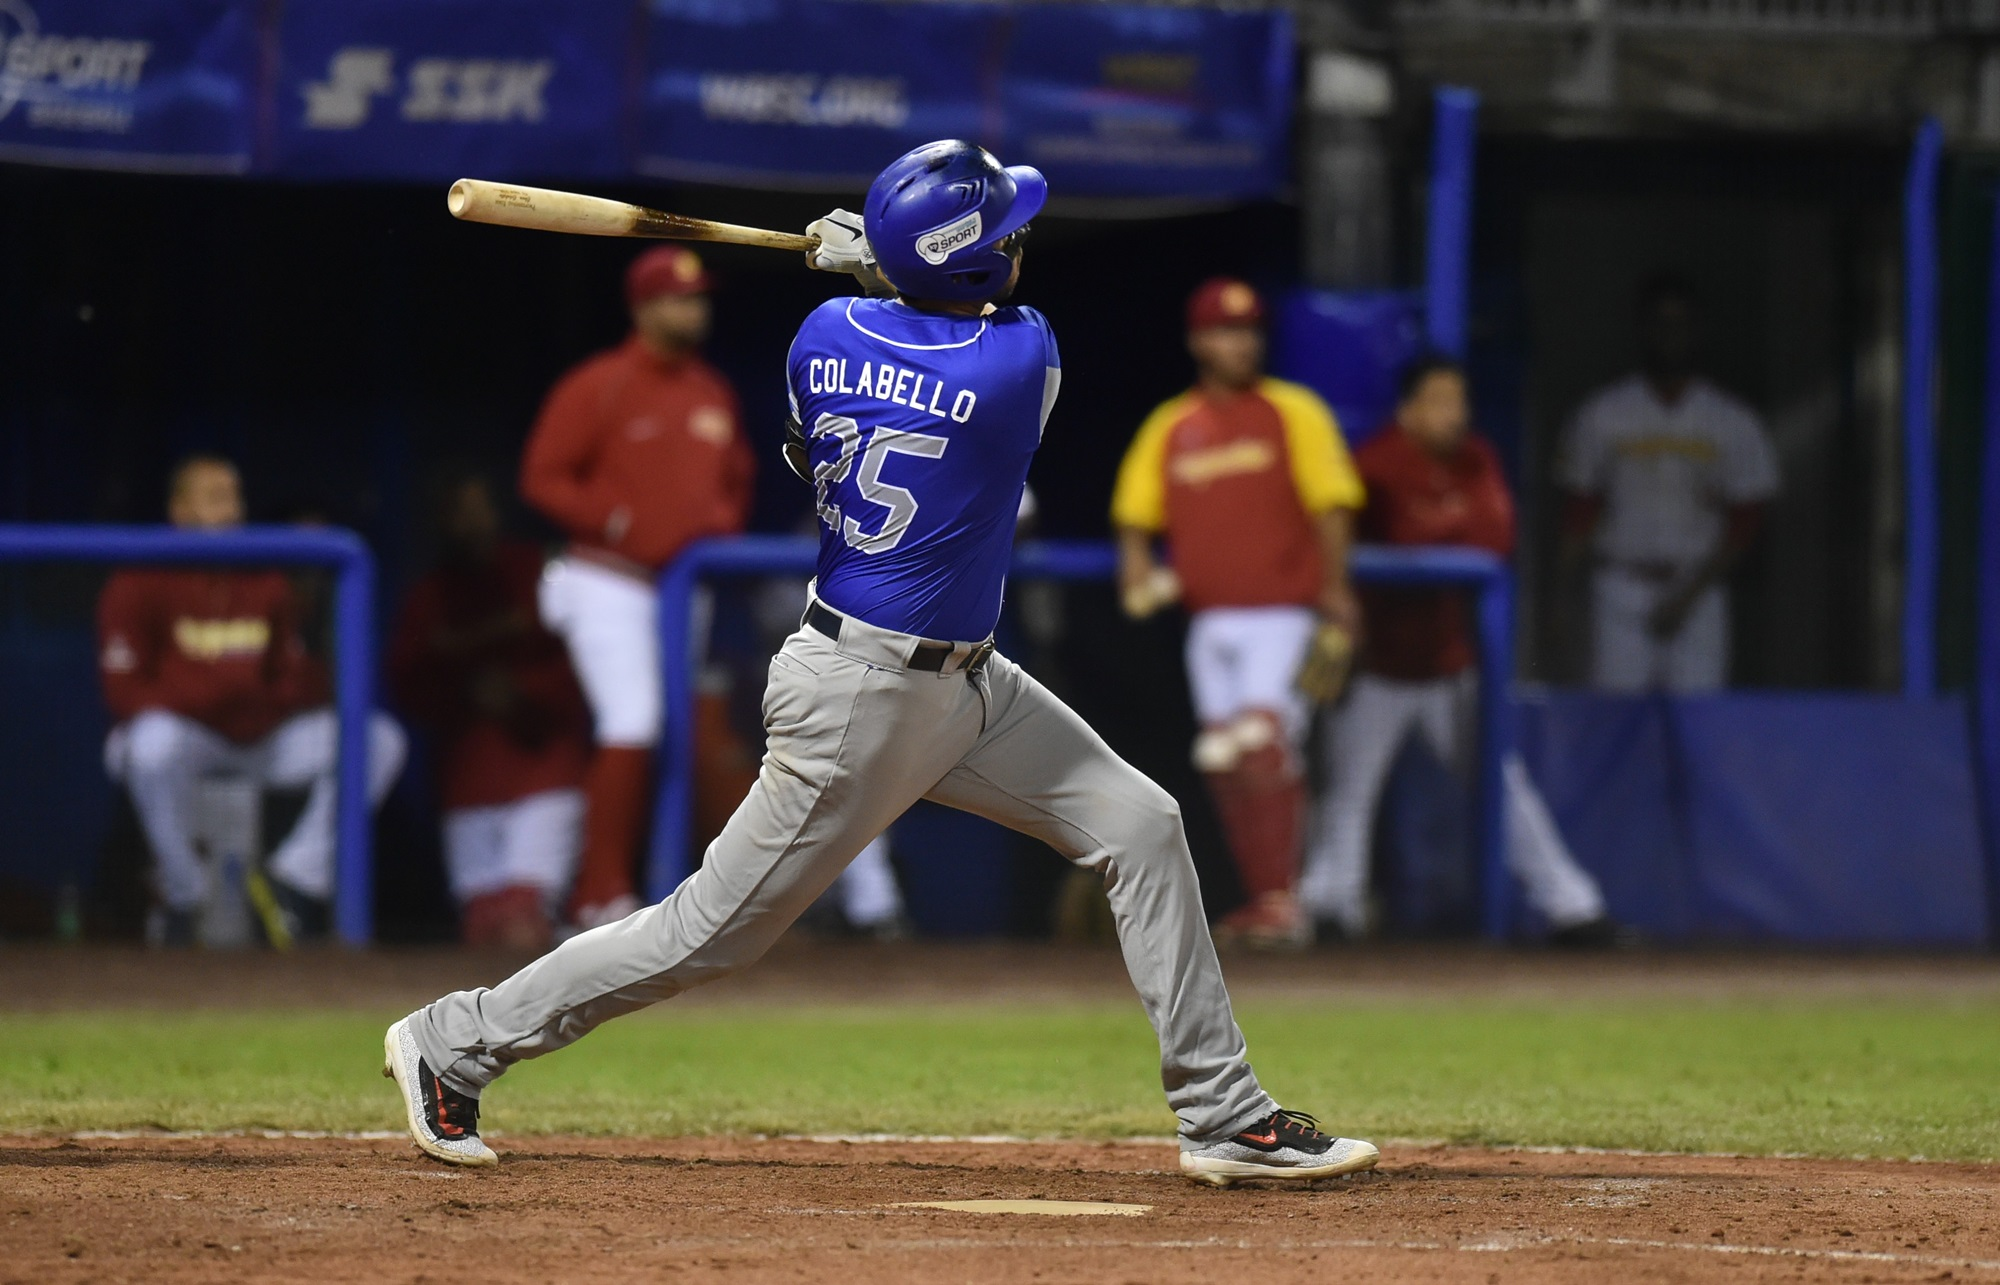 Chris Colabello homered for Italy